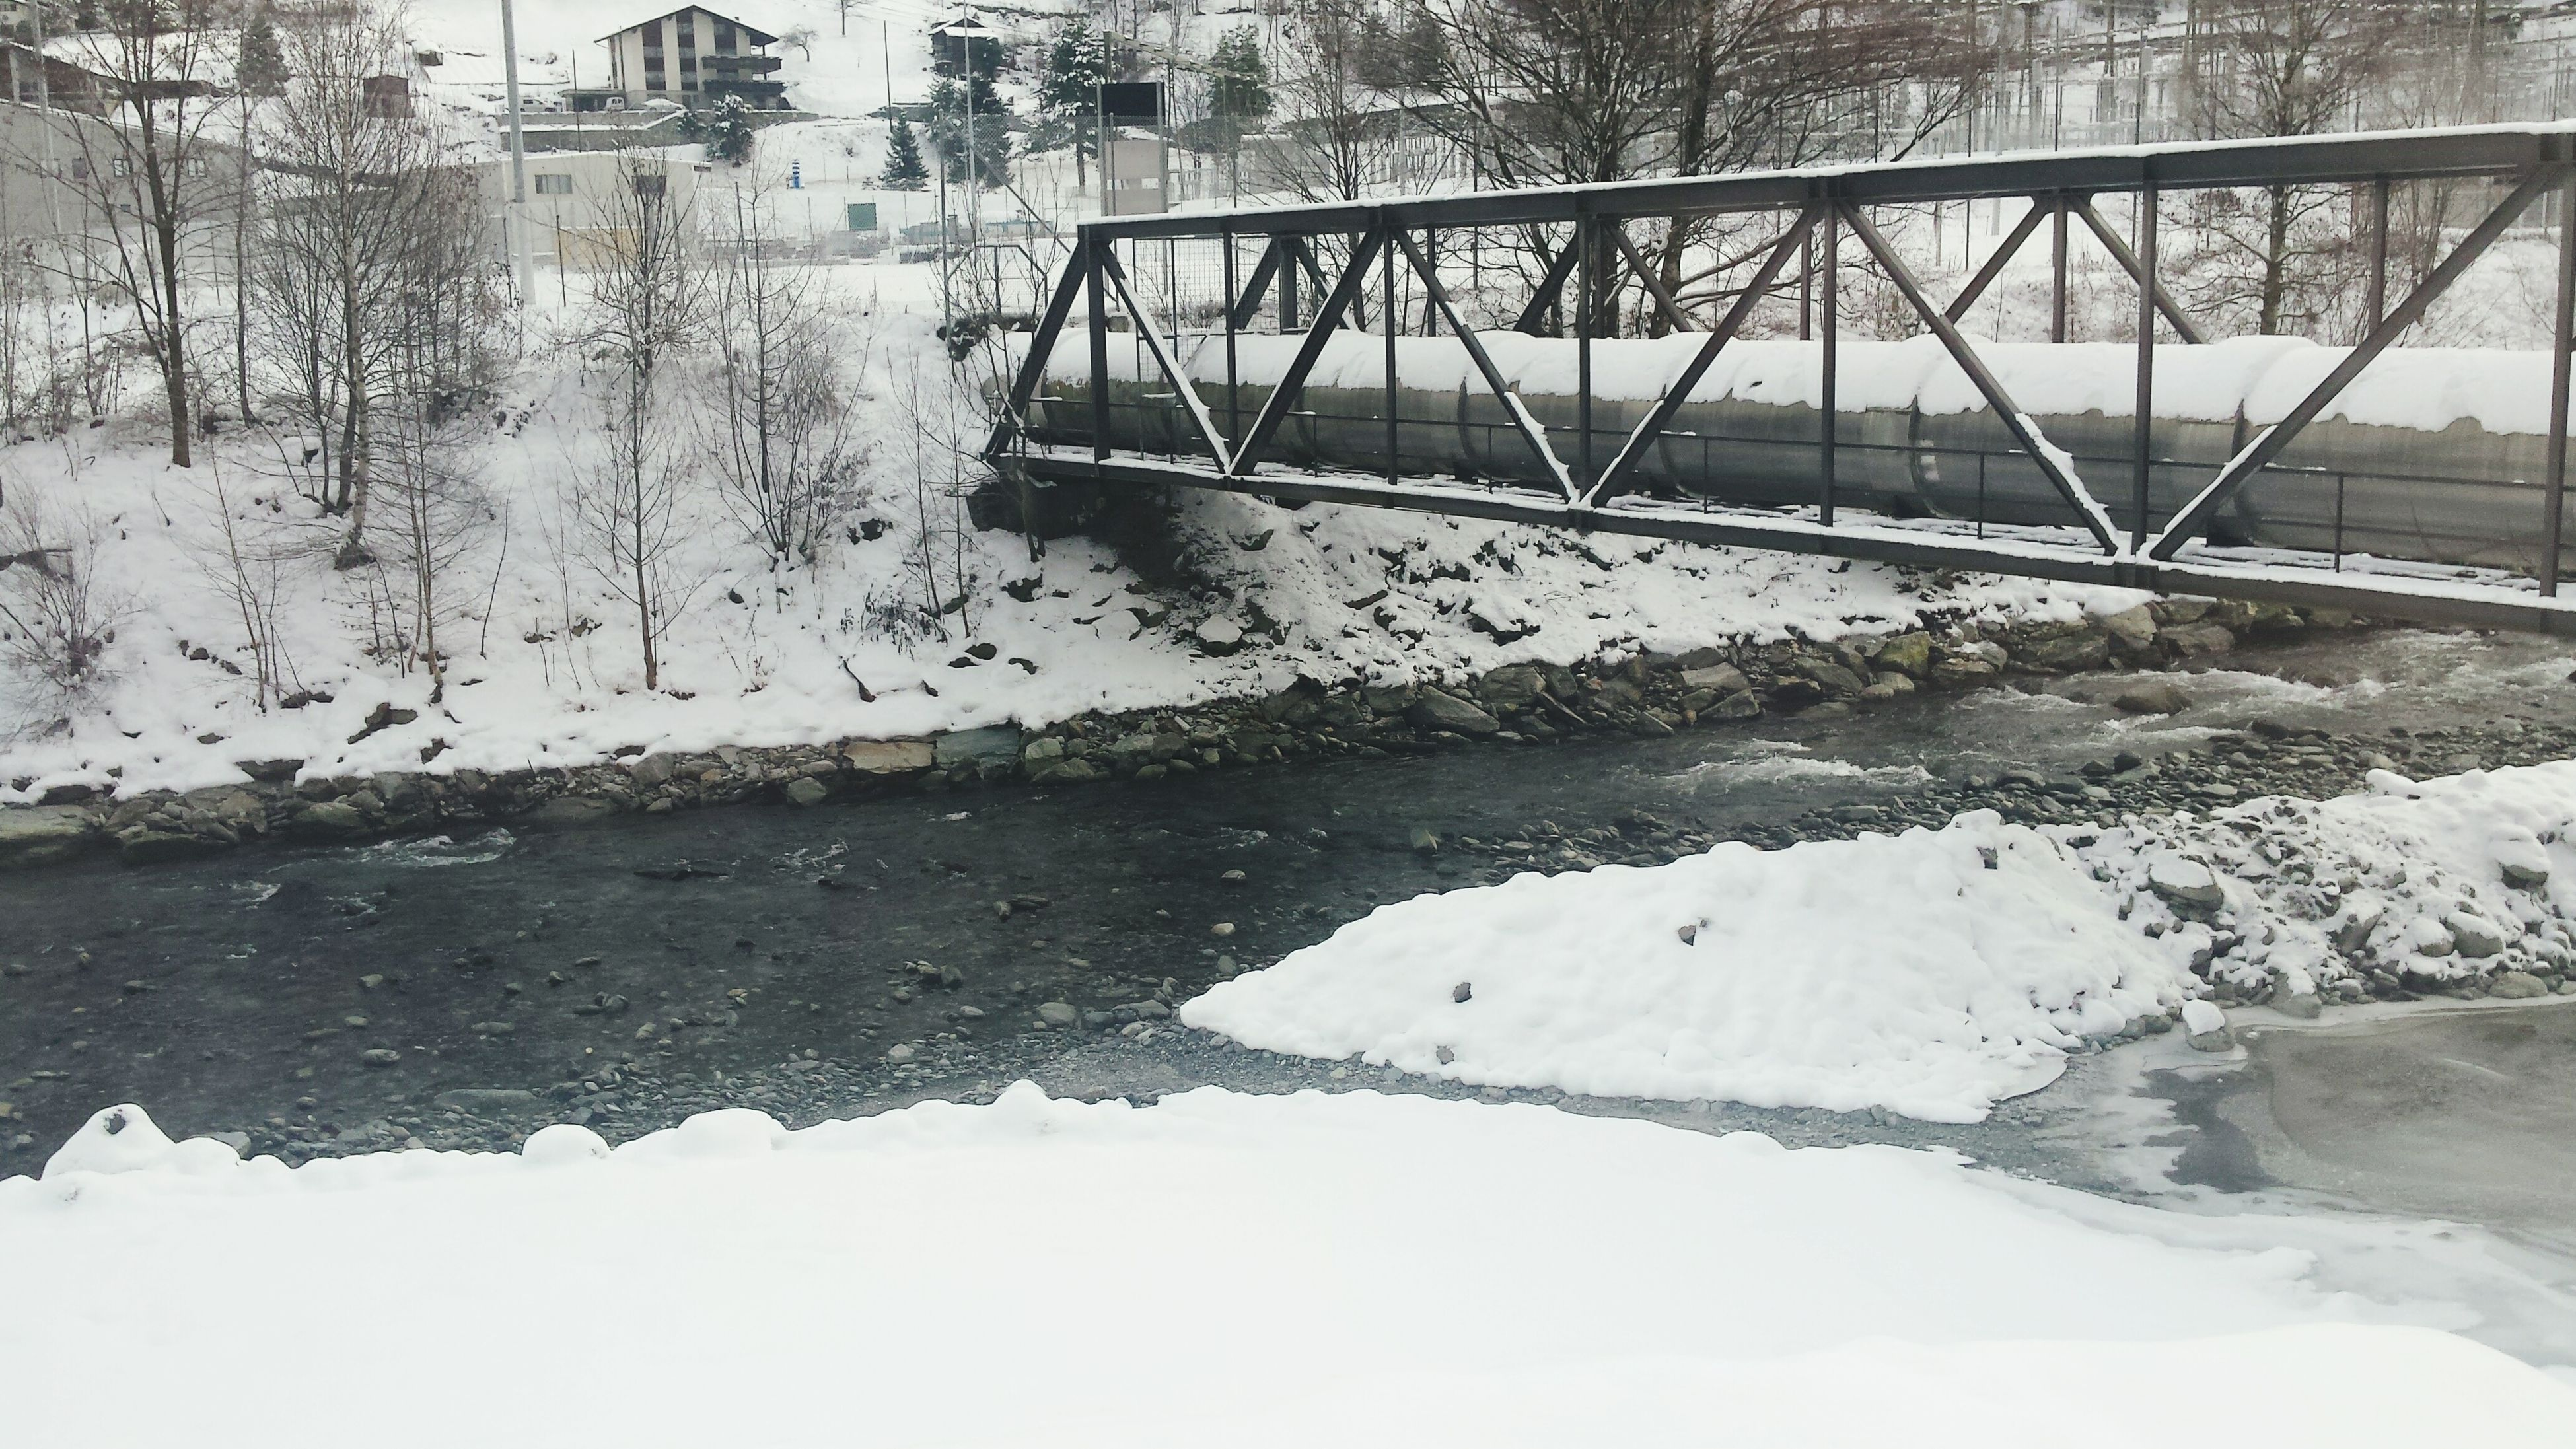 snow, winter, cold temperature, water, season, river, weather, built structure, frozen, bridge - man made structure, nature, tranquility, architecture, bare tree, covering, connection, tranquil scene, tree, lake, railing